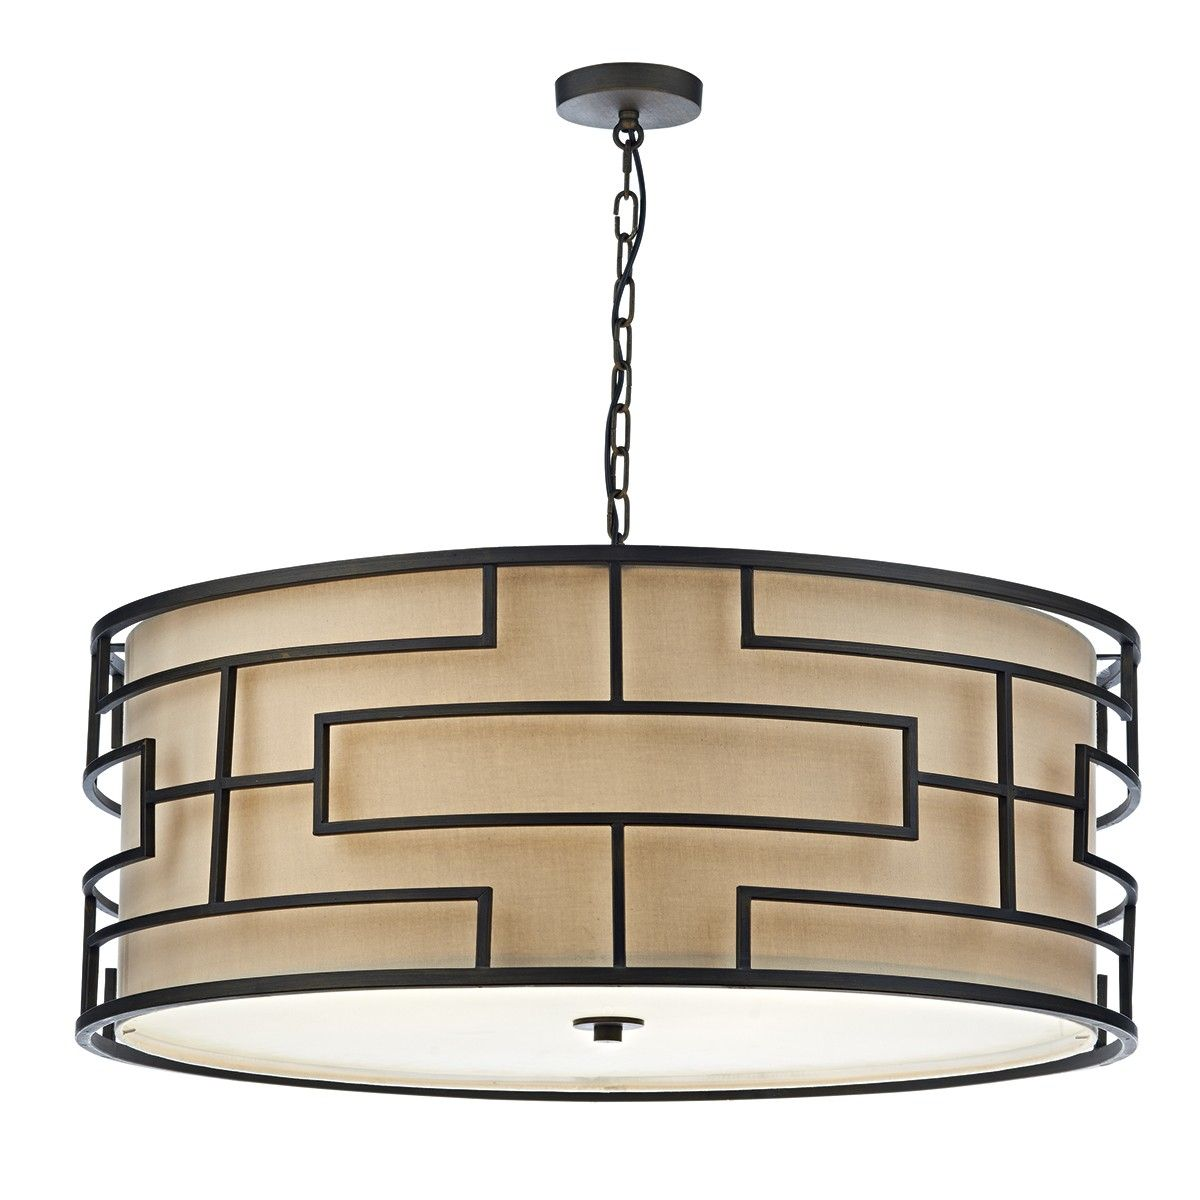 Tum0663 Tumola 6 Light Pendant In Bronze Matt Finish Supplied With Taupe